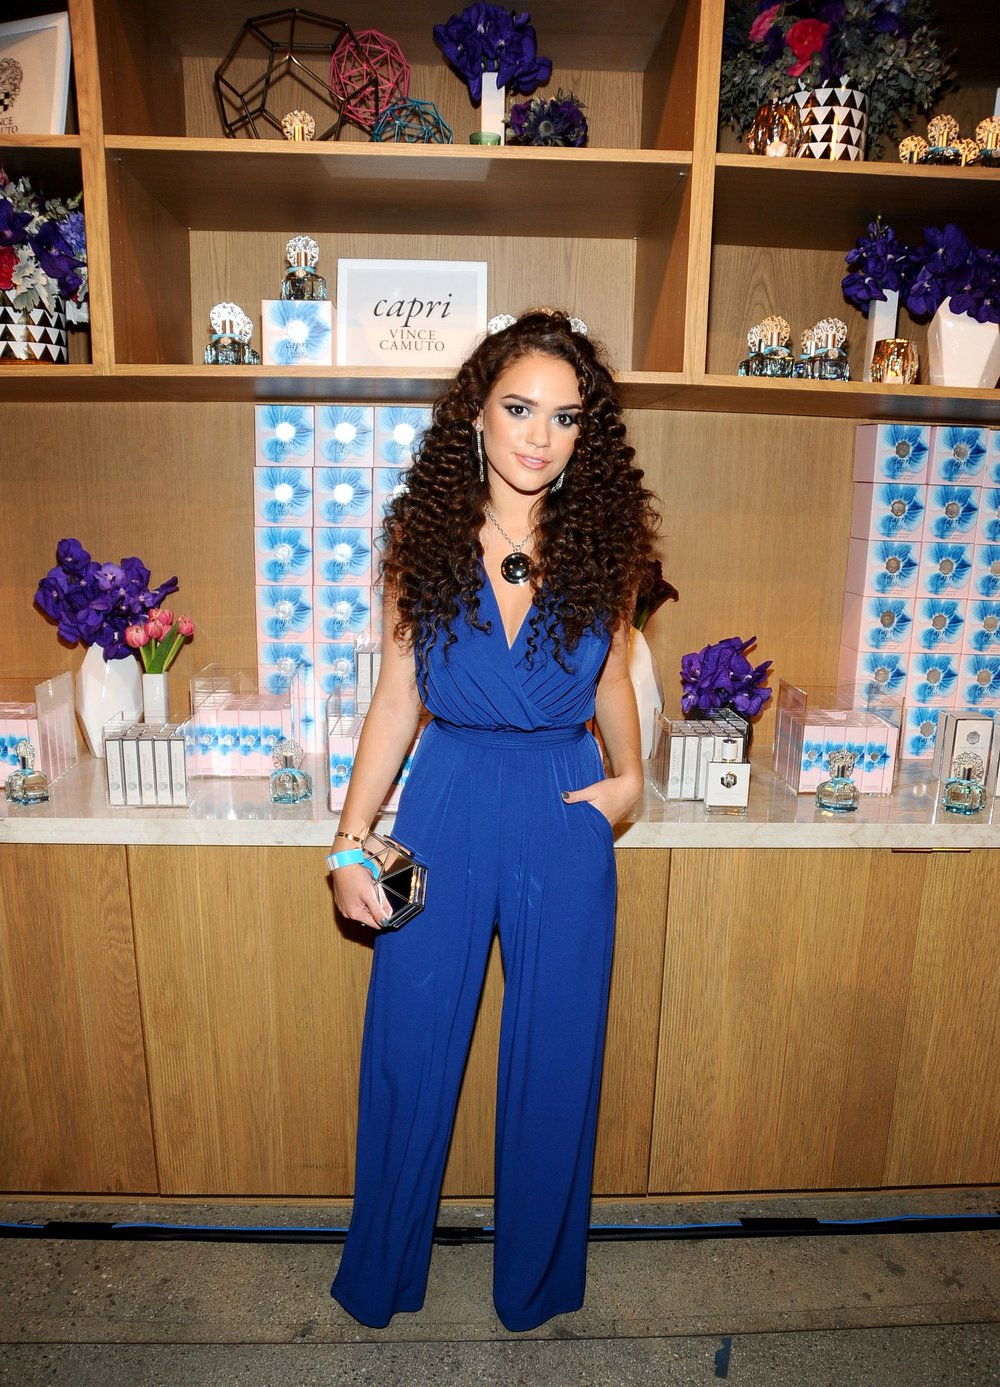 Madison Pettis wears a Vince Camuto jumpsuit and necklace, Imagine Vince Camuto Keir Heels and carries the Vince Camuto Aleni Clutch.